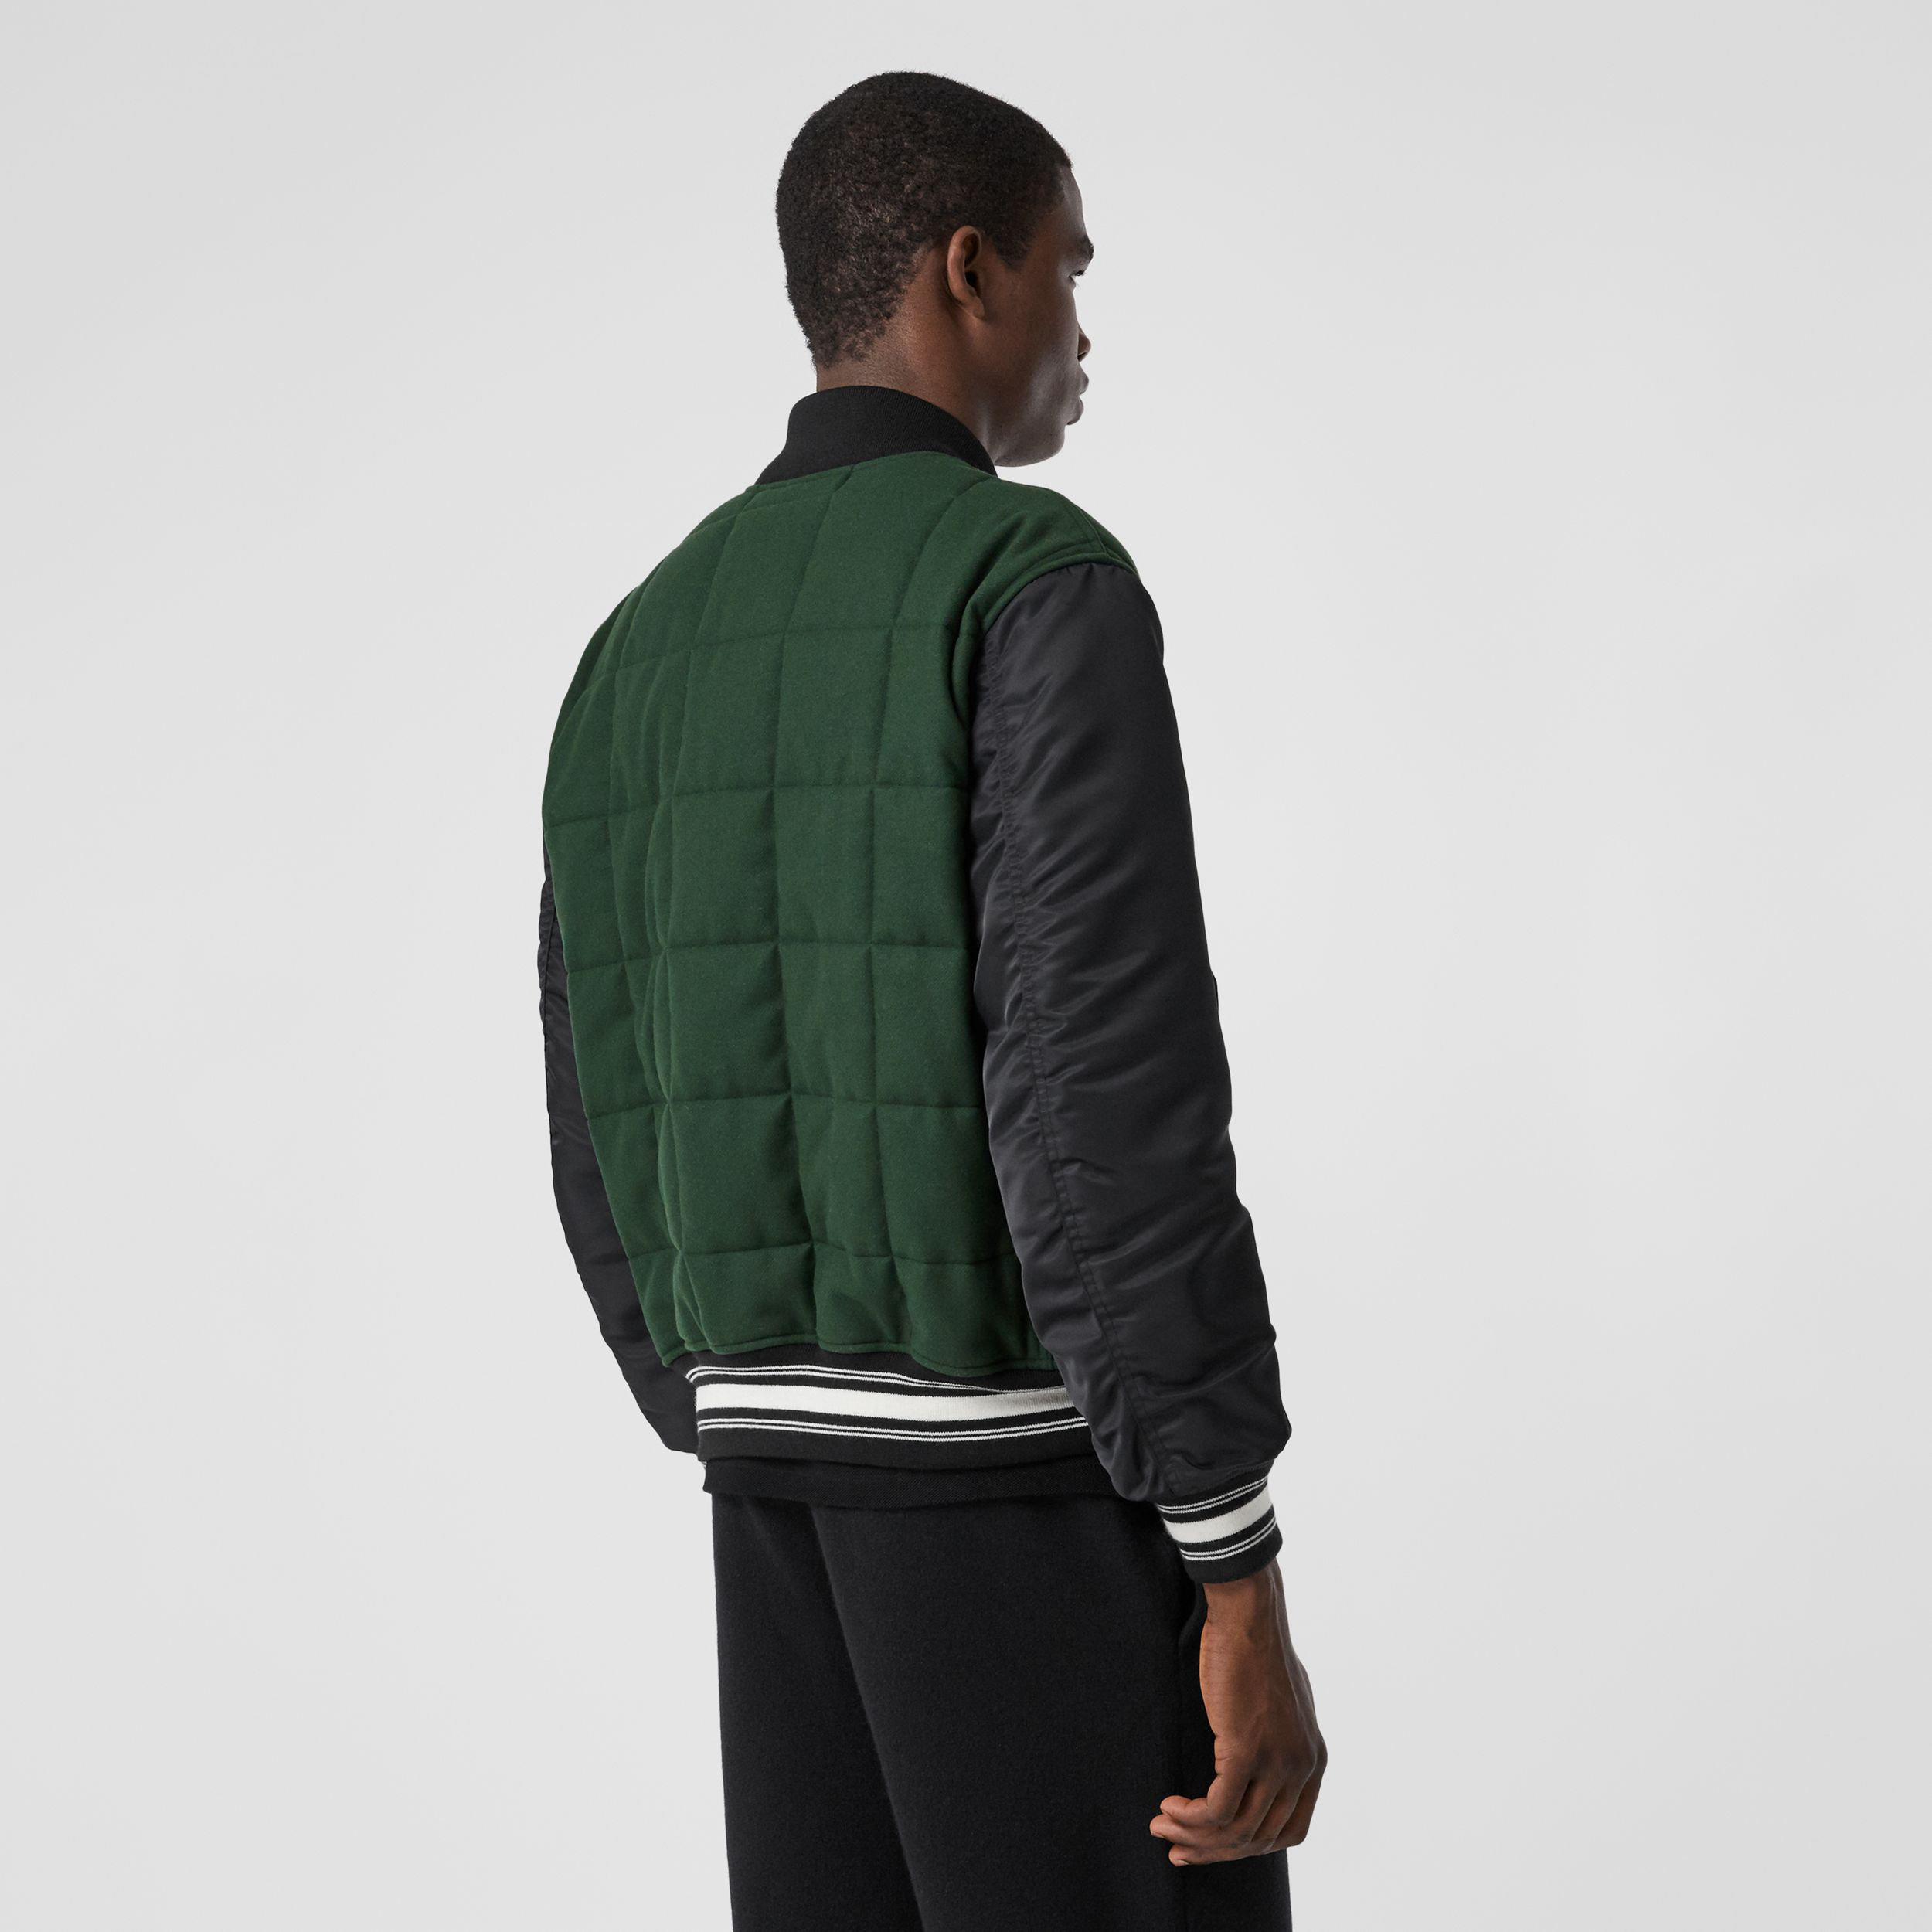 Contrast Sleeve Logo Graphic Wool Bomber Jacket in Dark Pine Green - Men | Burberry - 3